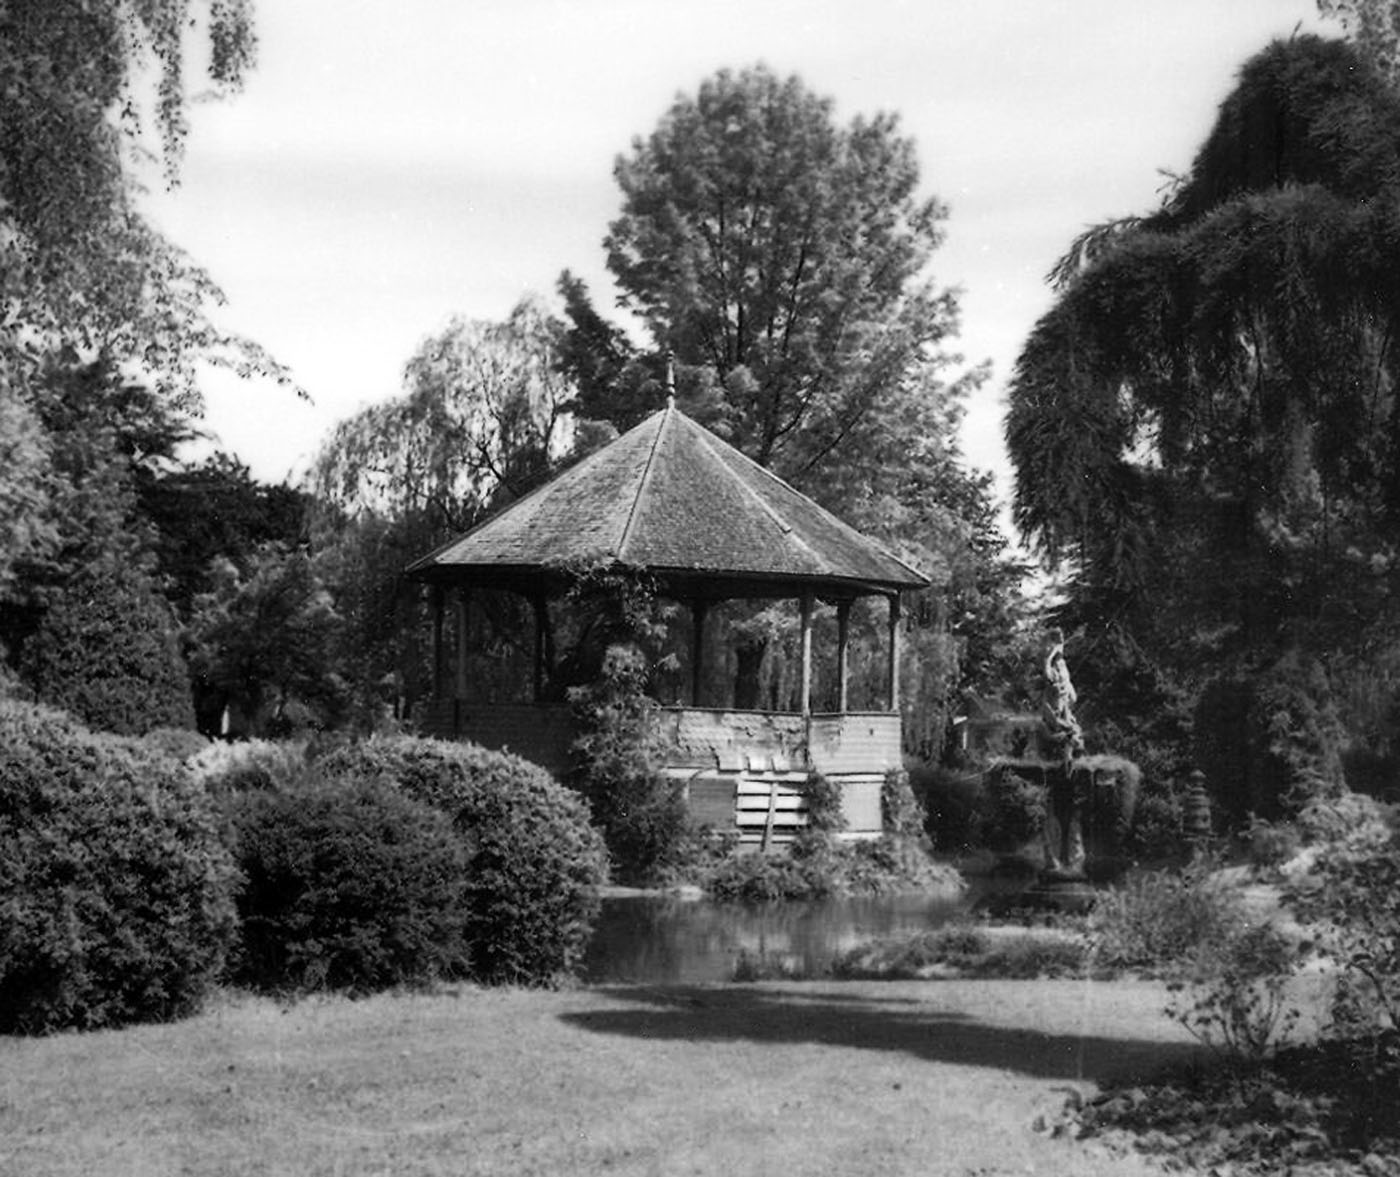 The Elizabeth Park bandstand. It was built in 1901 and in poor condition when the photo was taken in 1938. photo: Ben Sefrit, Whatcom Museum #1995.1.1753